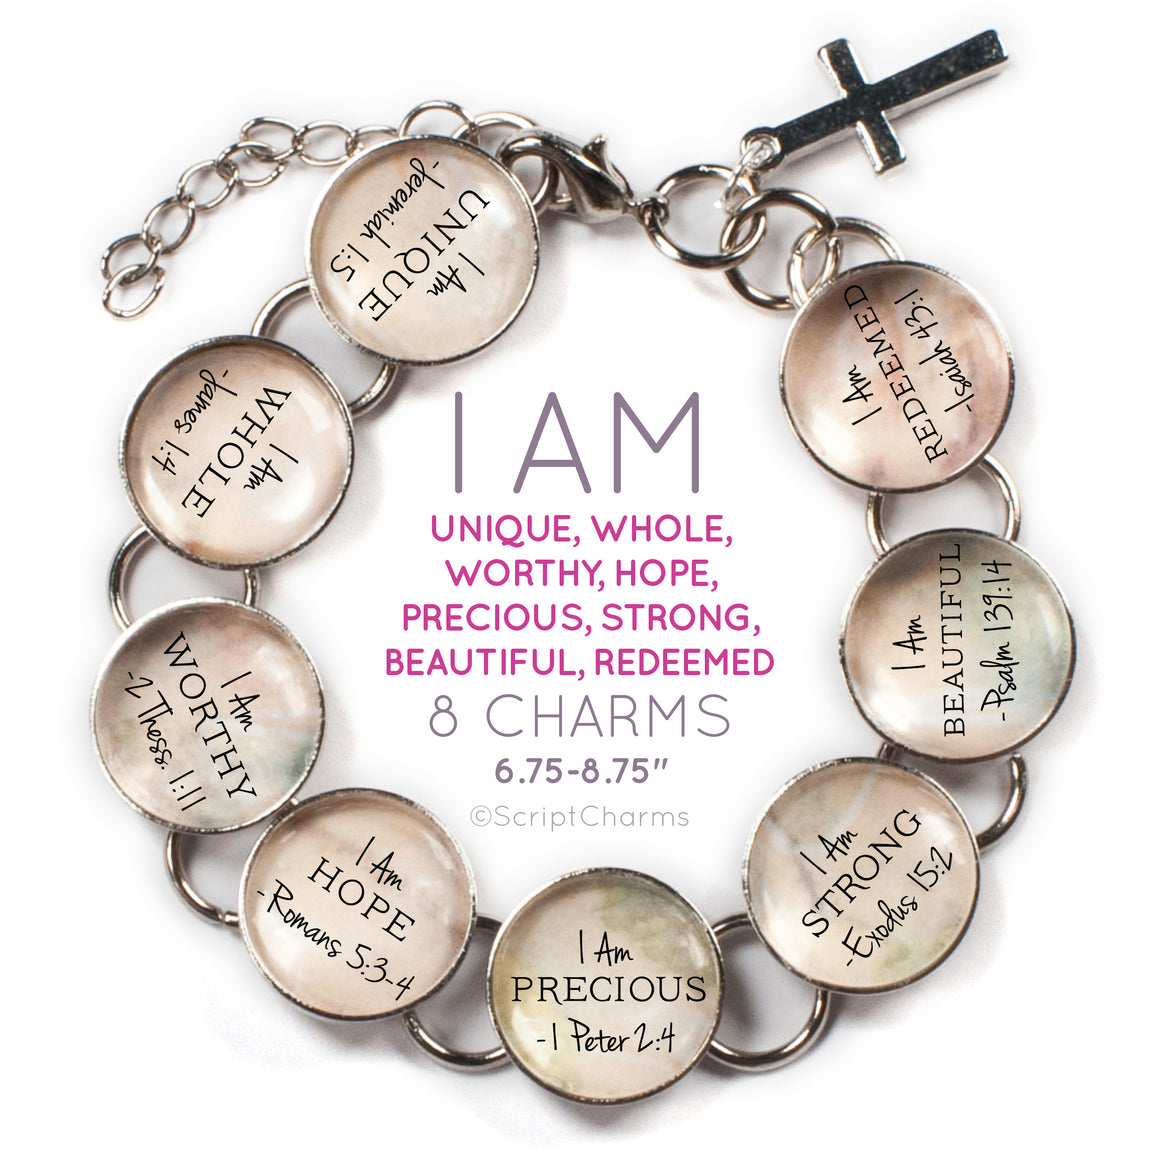 I AM Unique, Whole, Worthy, Strong, Beautiful – Christian Affirmations Scripture Charm Bracelet